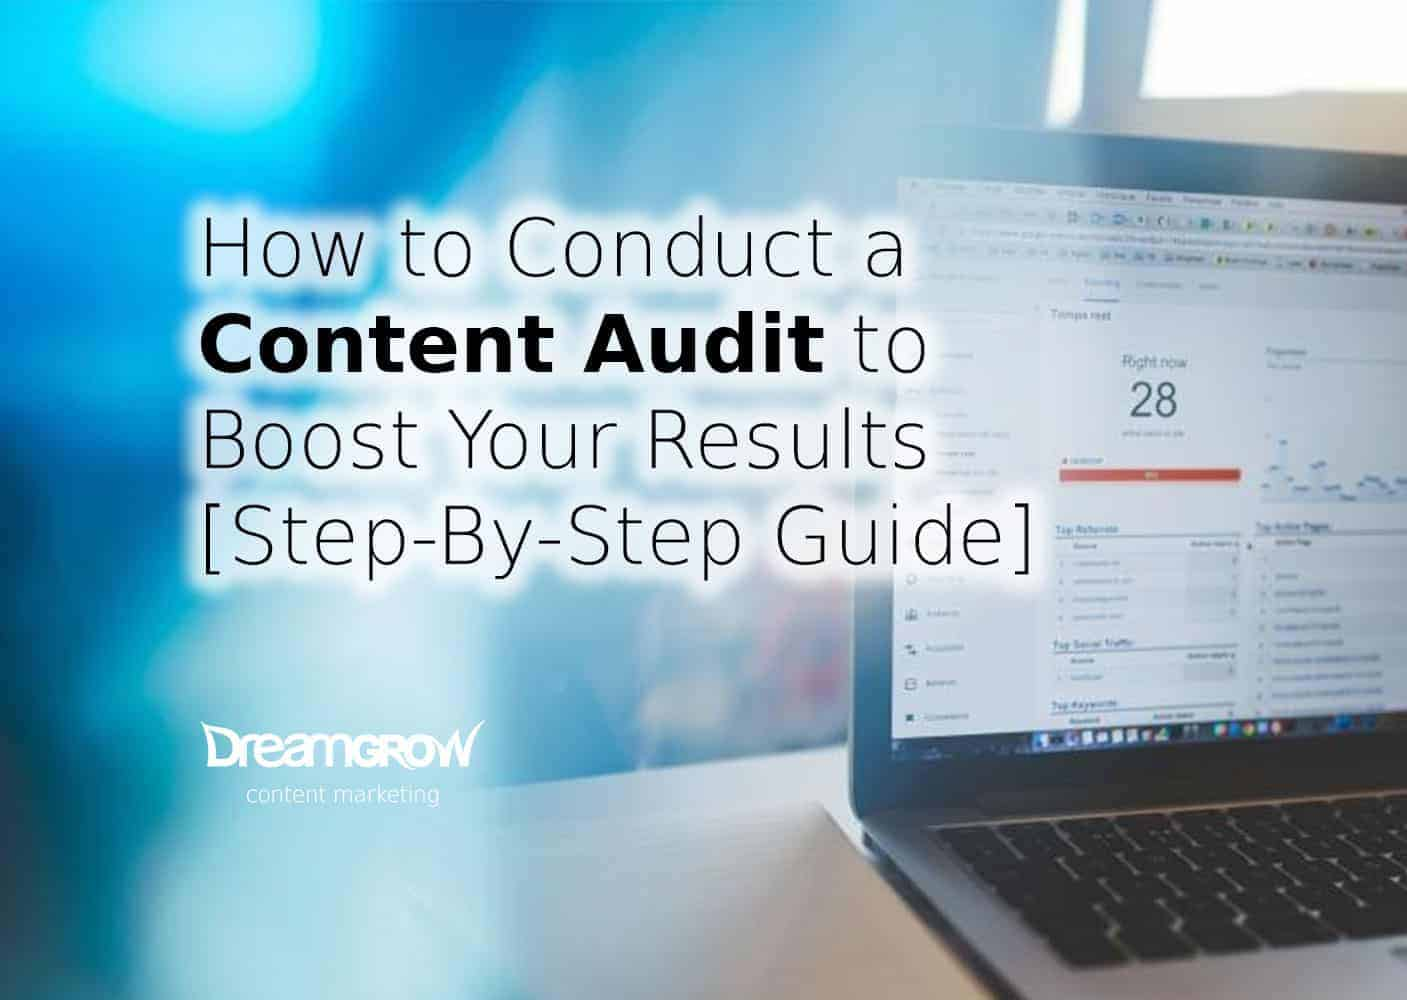 Your Step By Step Guide To The: How To Conduct A Content Audit To Boost Your Results [Step